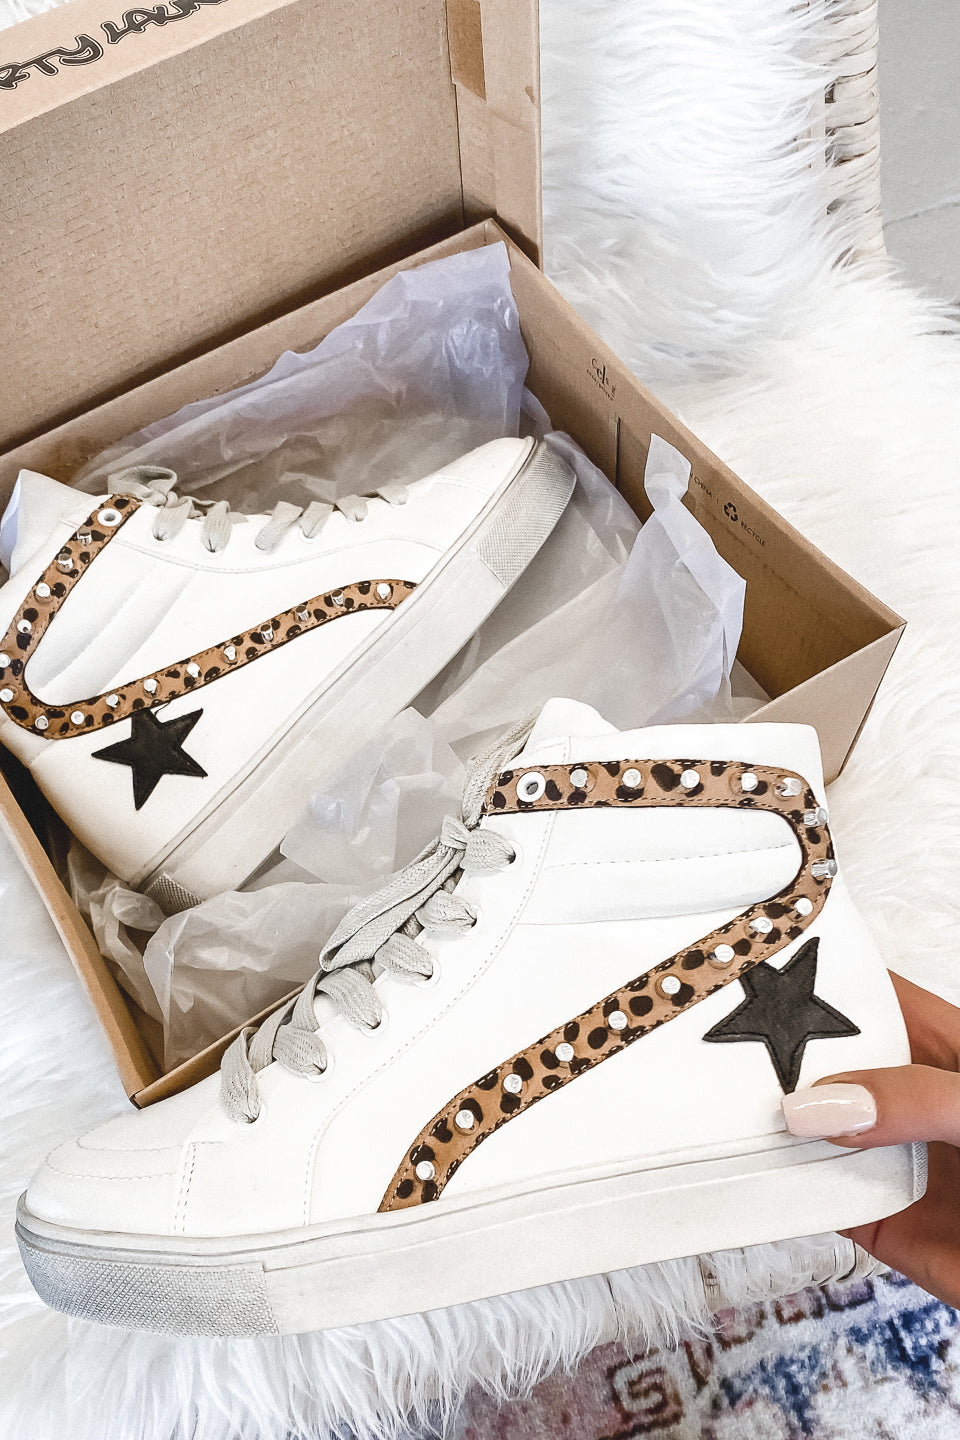 Skater Boy White High Top Sneakers